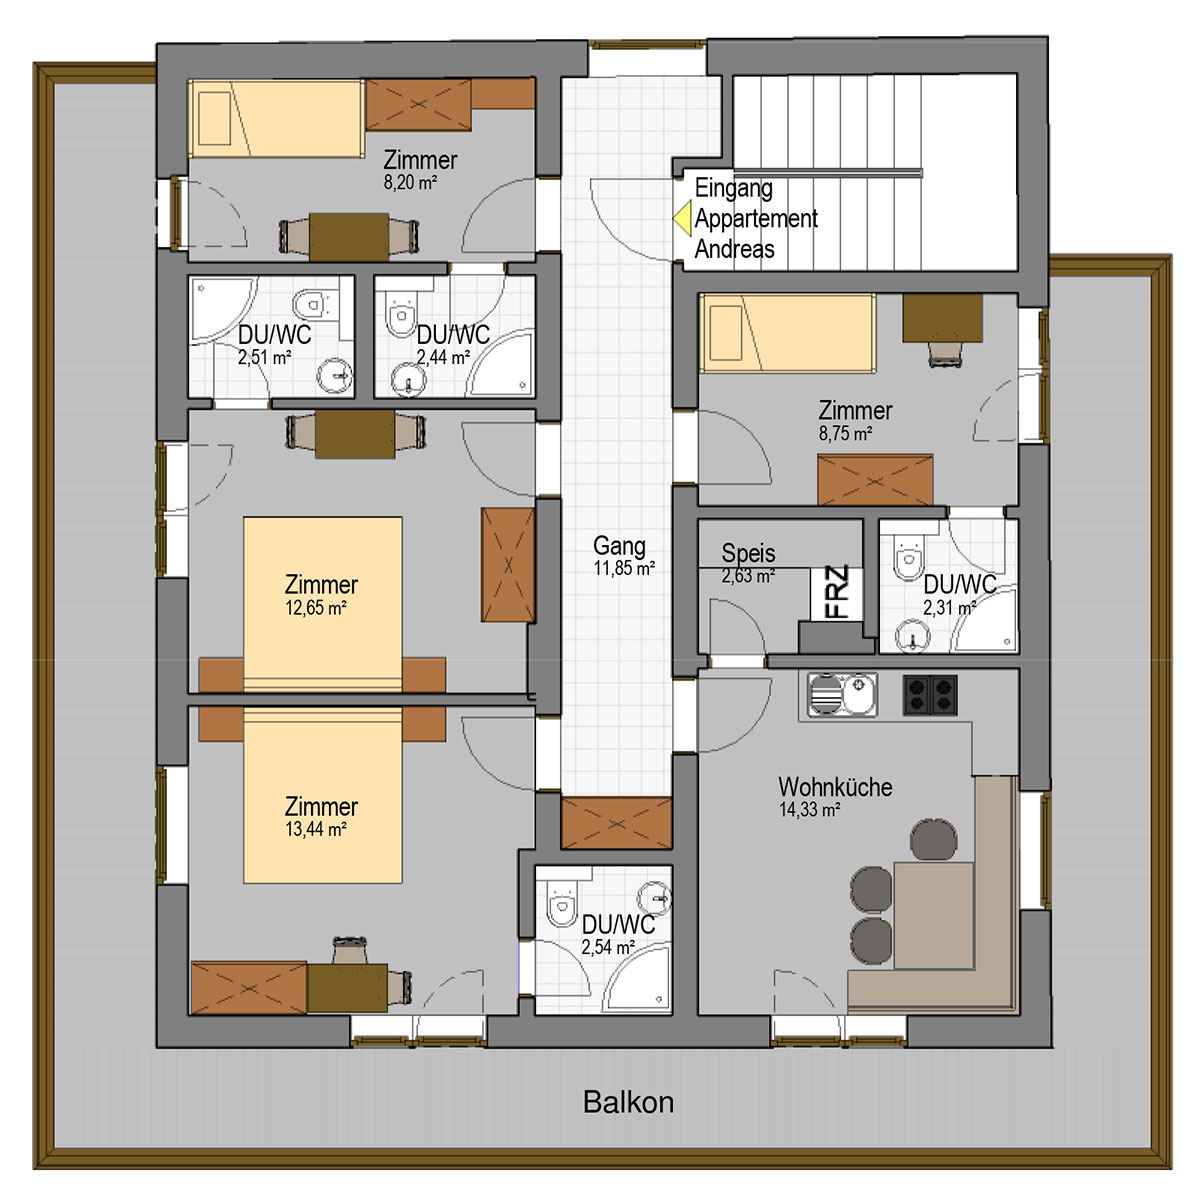 Apartment andreas floor plan grundriss appartement andreas